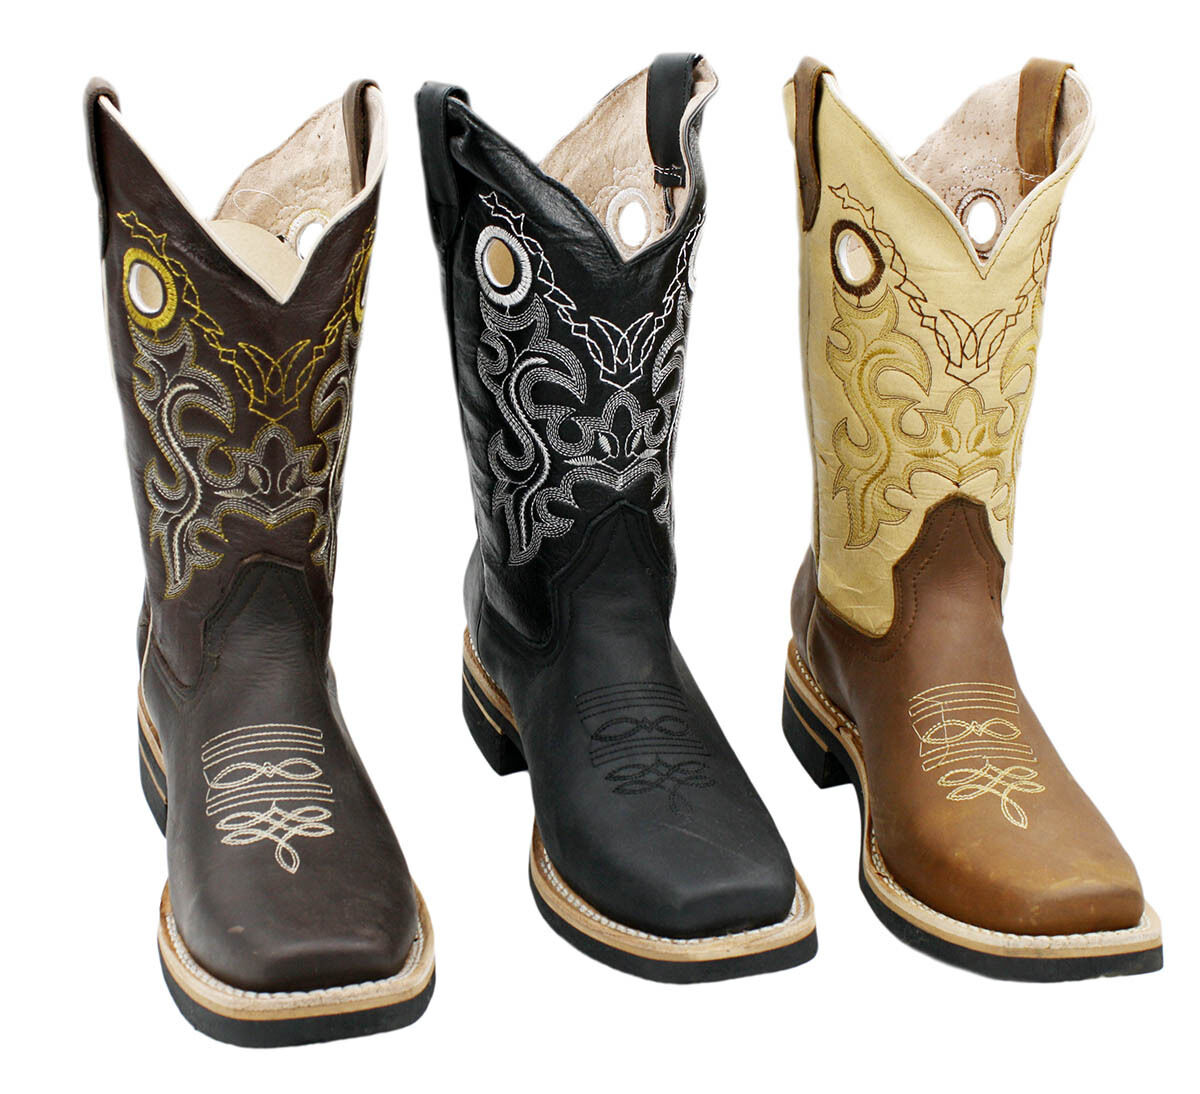 MEN'S RODEO COWBOY BOOTS GENUINE LEATHER WESTERN SQUARE TOE BOTAS  CAR721